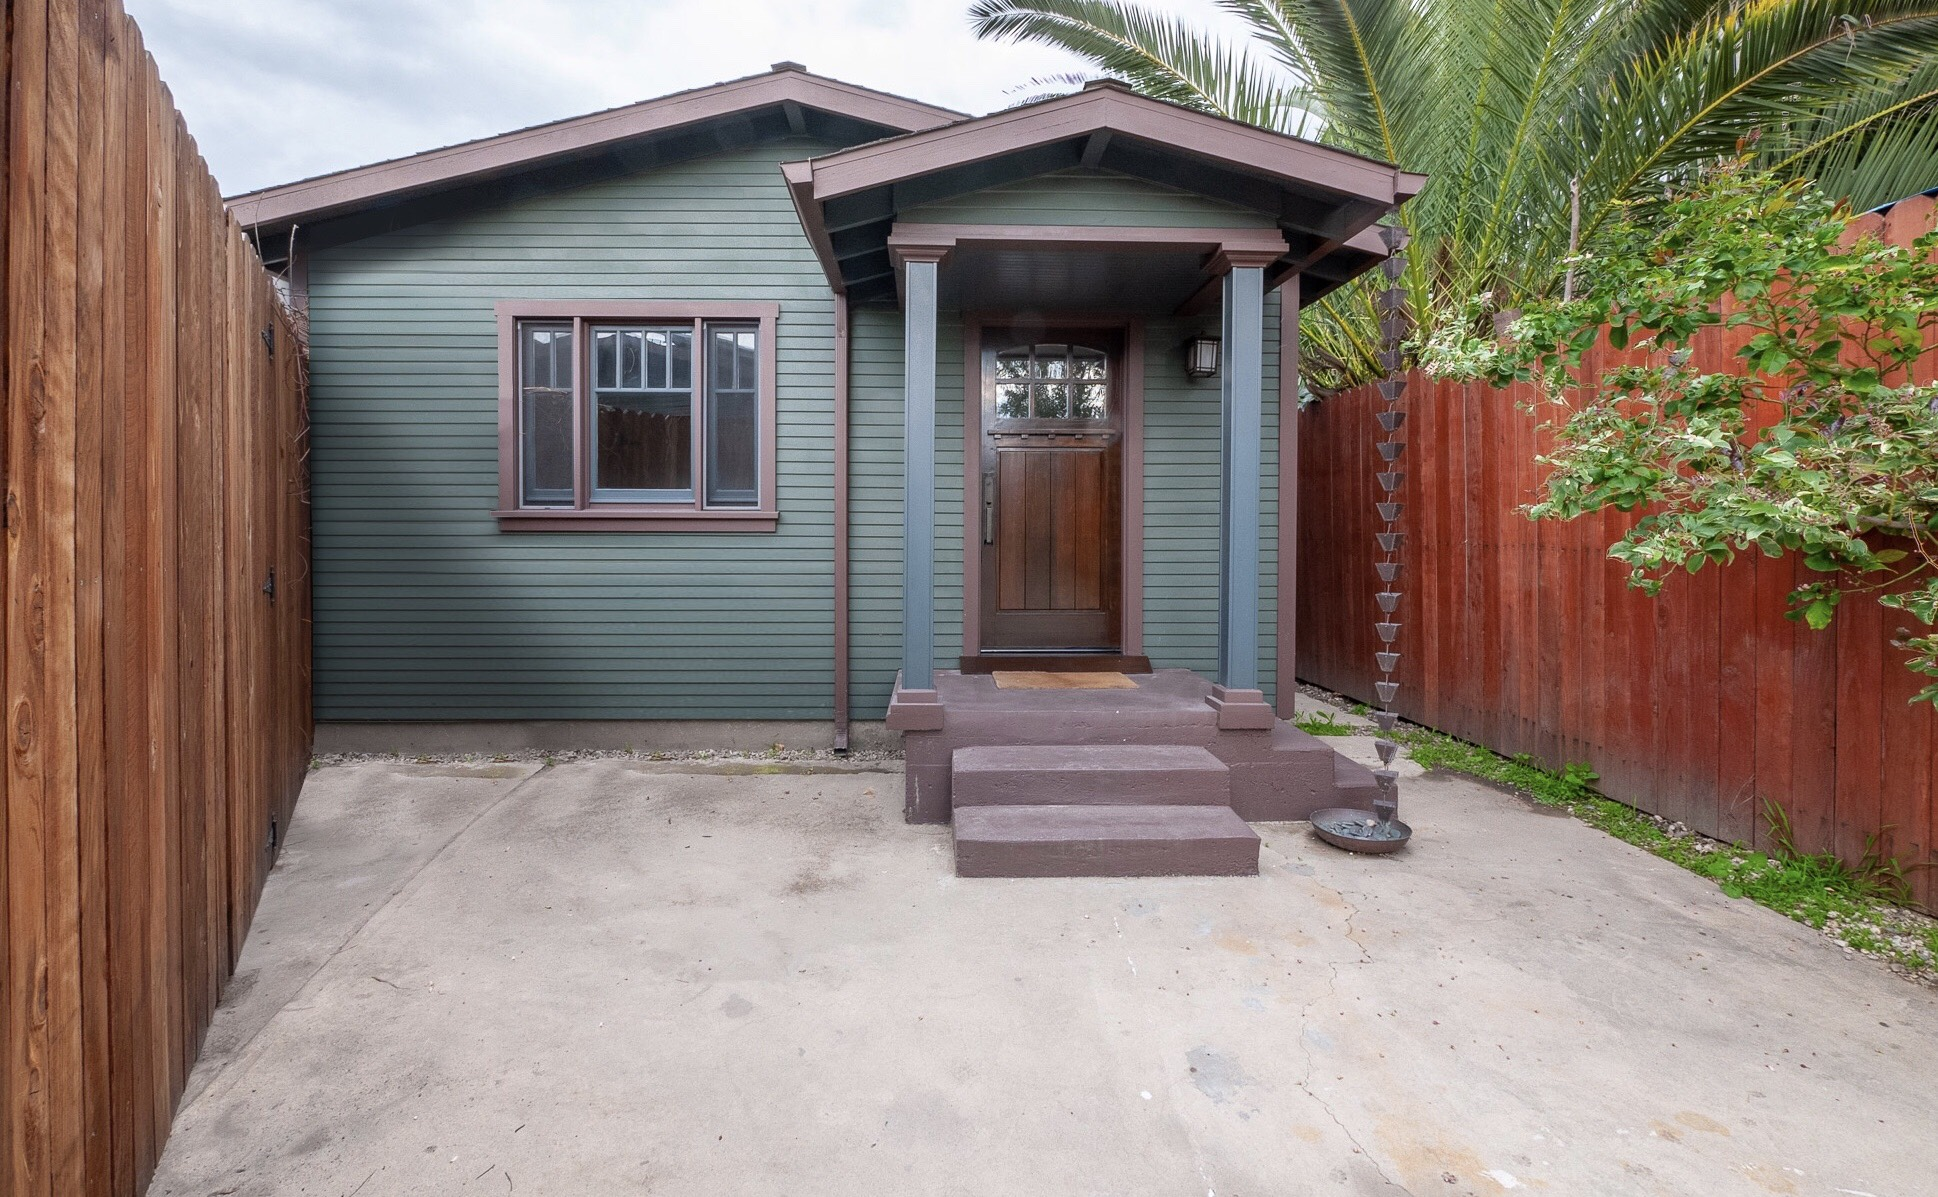 Bungalow Dream! Amazing Craftsman Style Guest House!